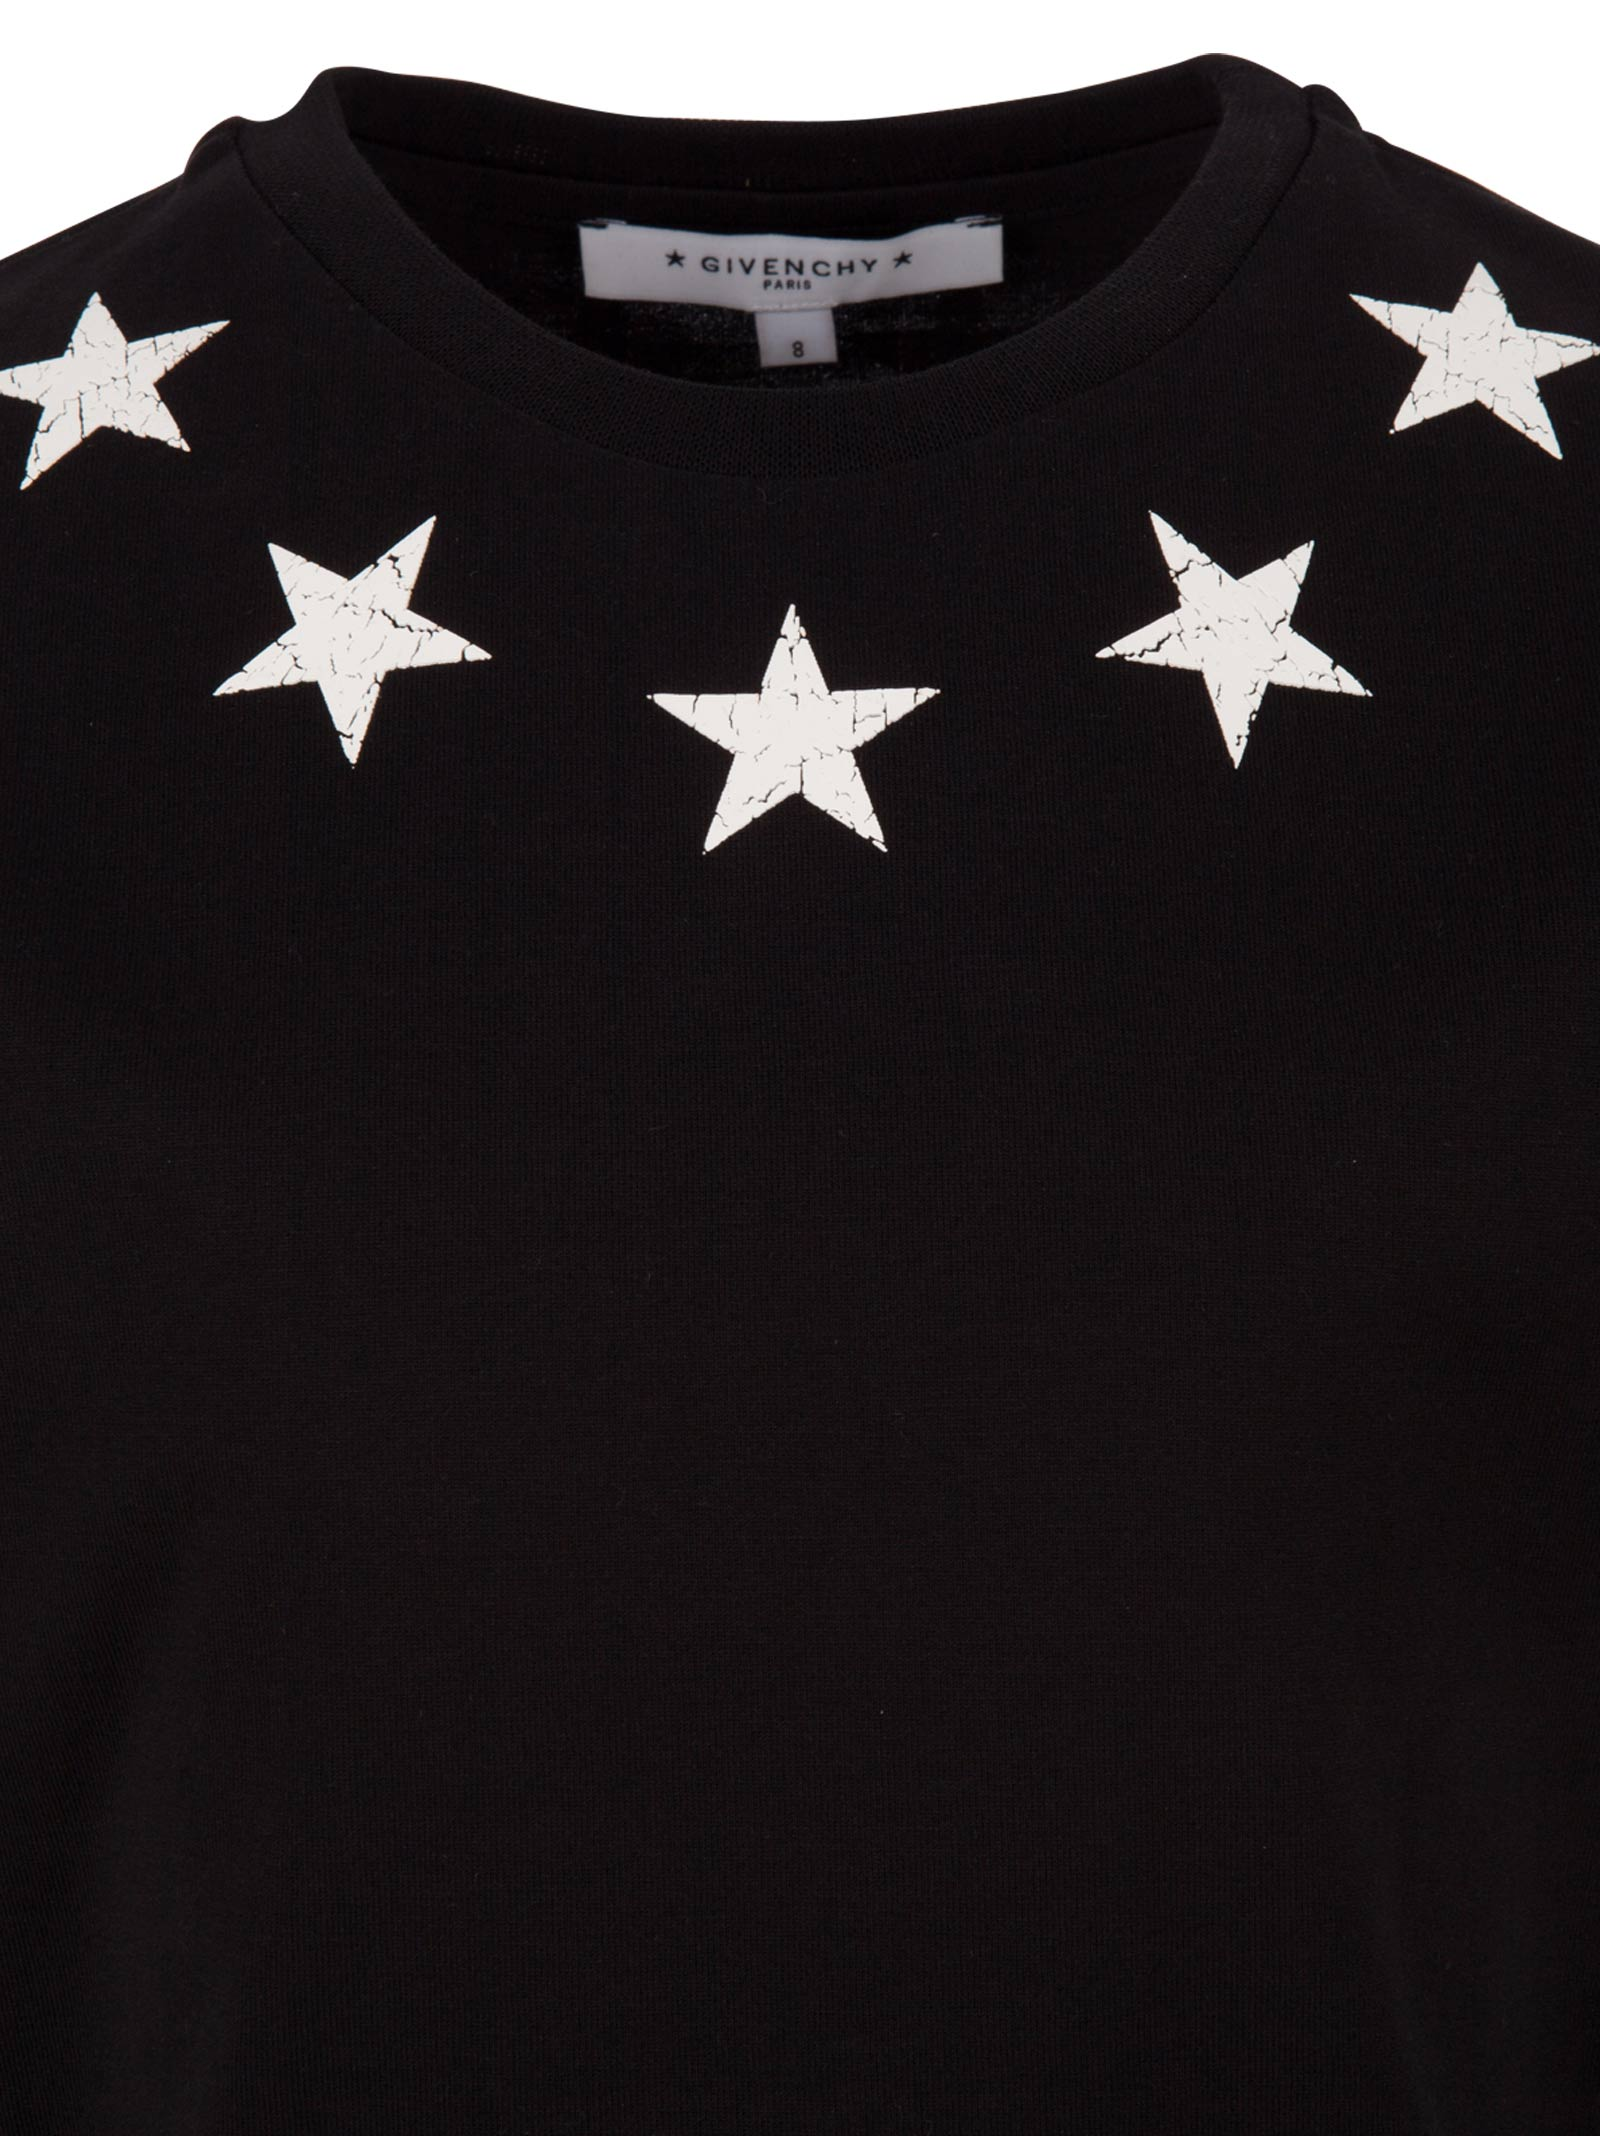 304158cb7 GIVENCHY kids. Black cotton t-shirt for boys with white rubberized stars ...